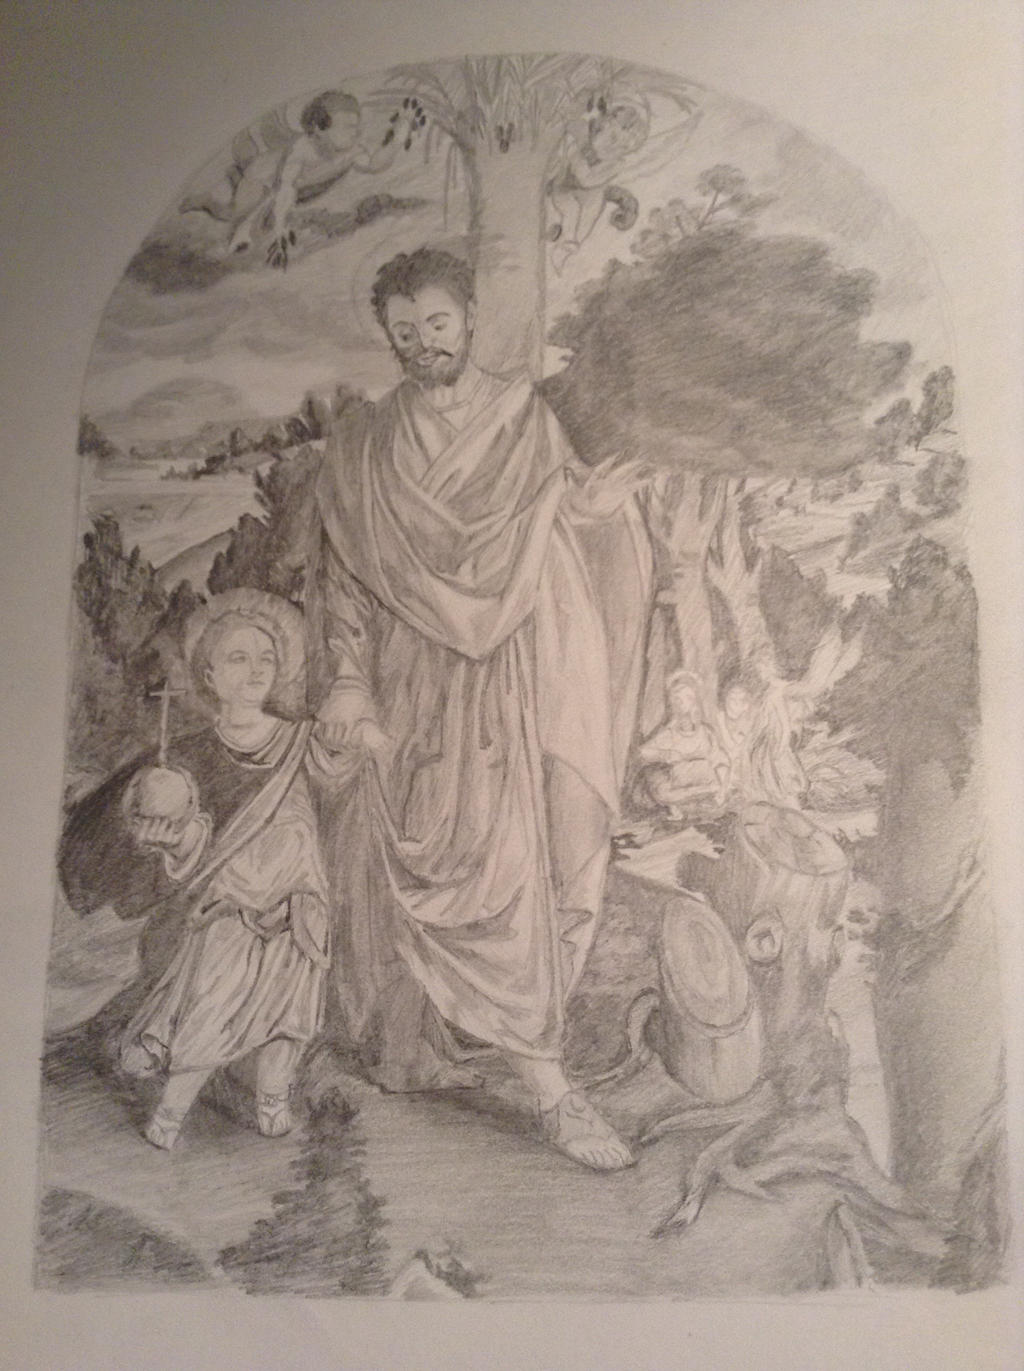 saint joseph chat Will burying a statuette of st joseph help speed the sale of a property.